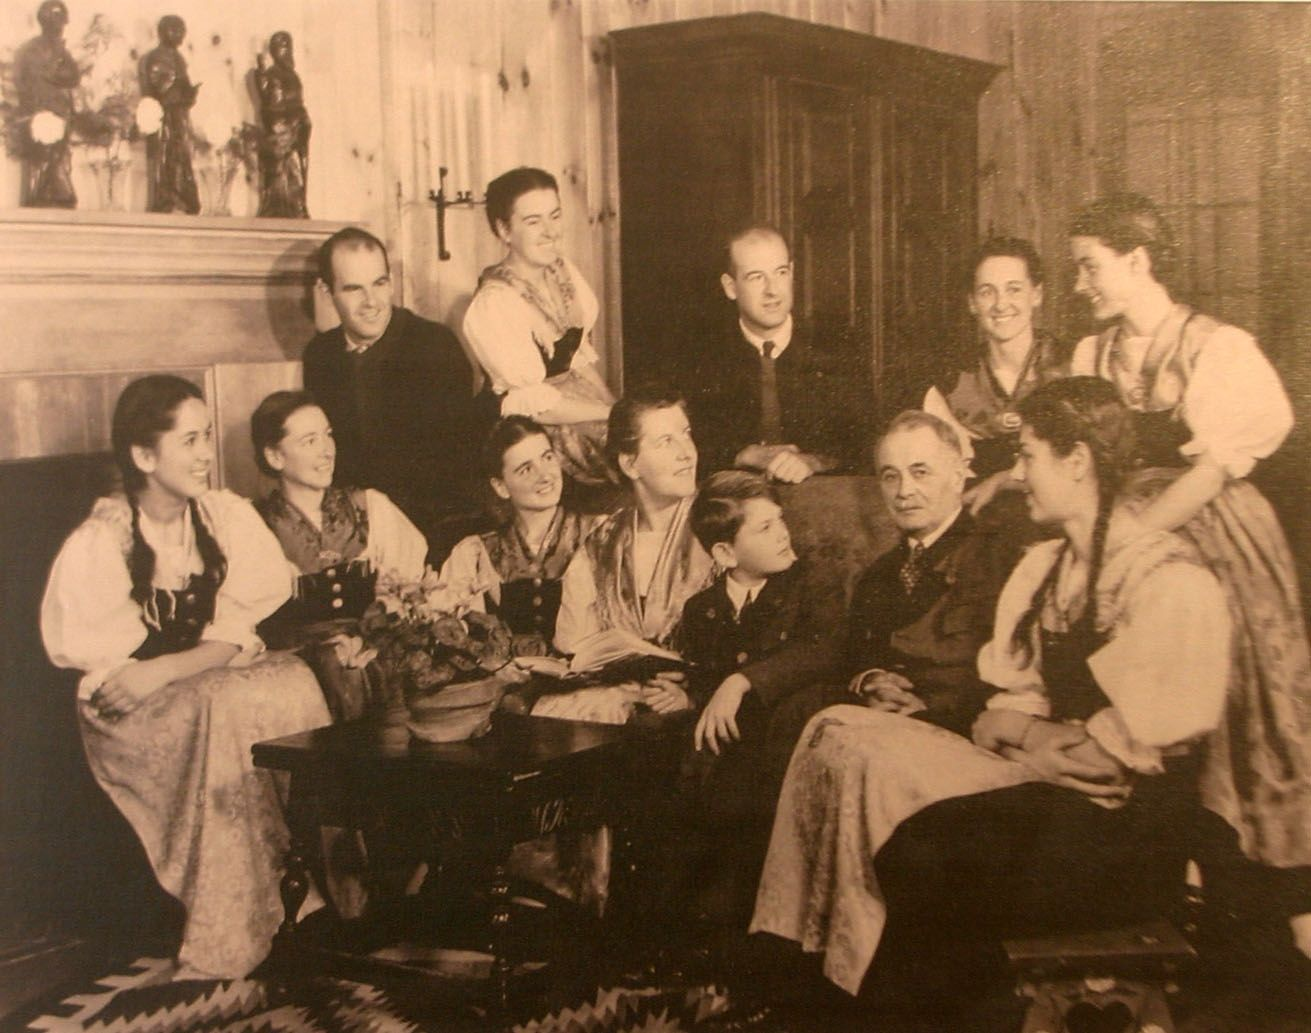 The original von trapp family my favorite things for House music singers